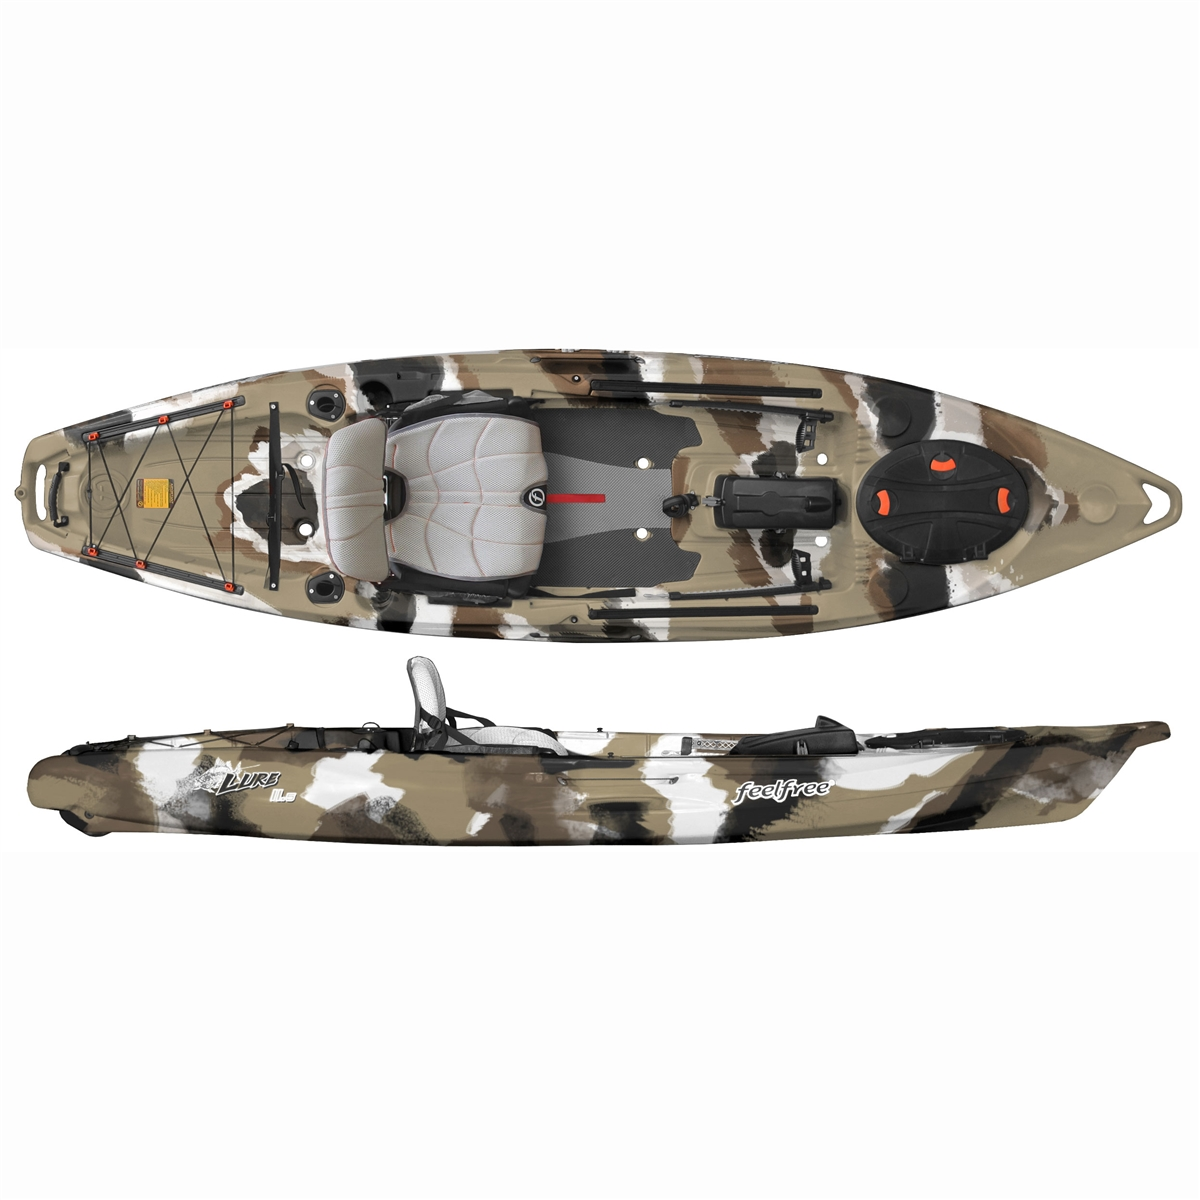 Feelfree Lure 11 5 Kayak With Overdrive Pedal Drive